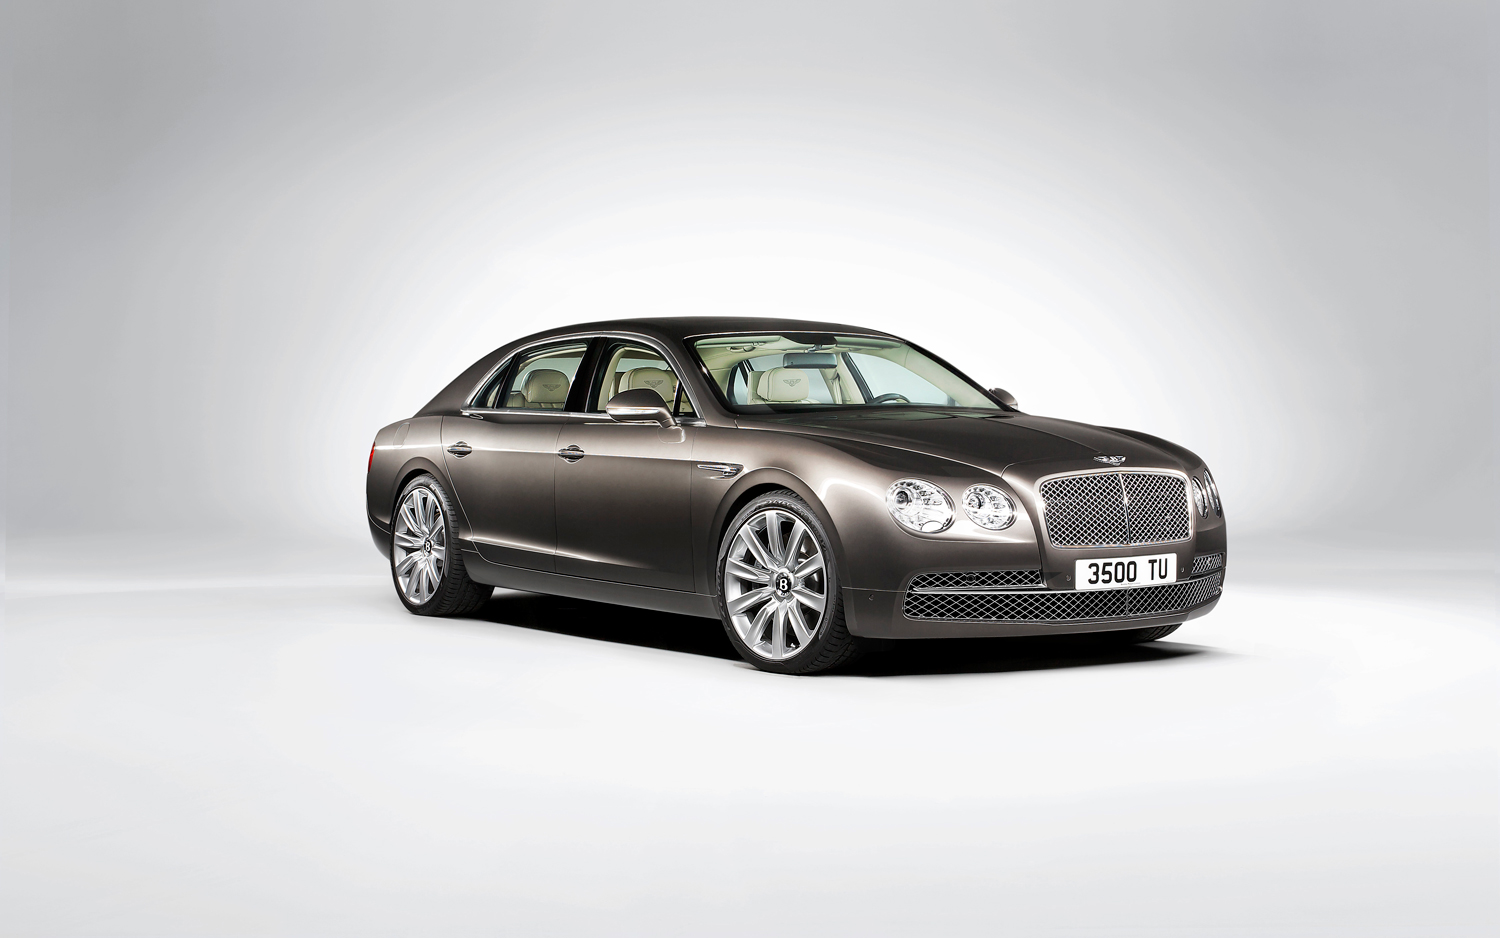 2014 Bentley Flying Spur #5